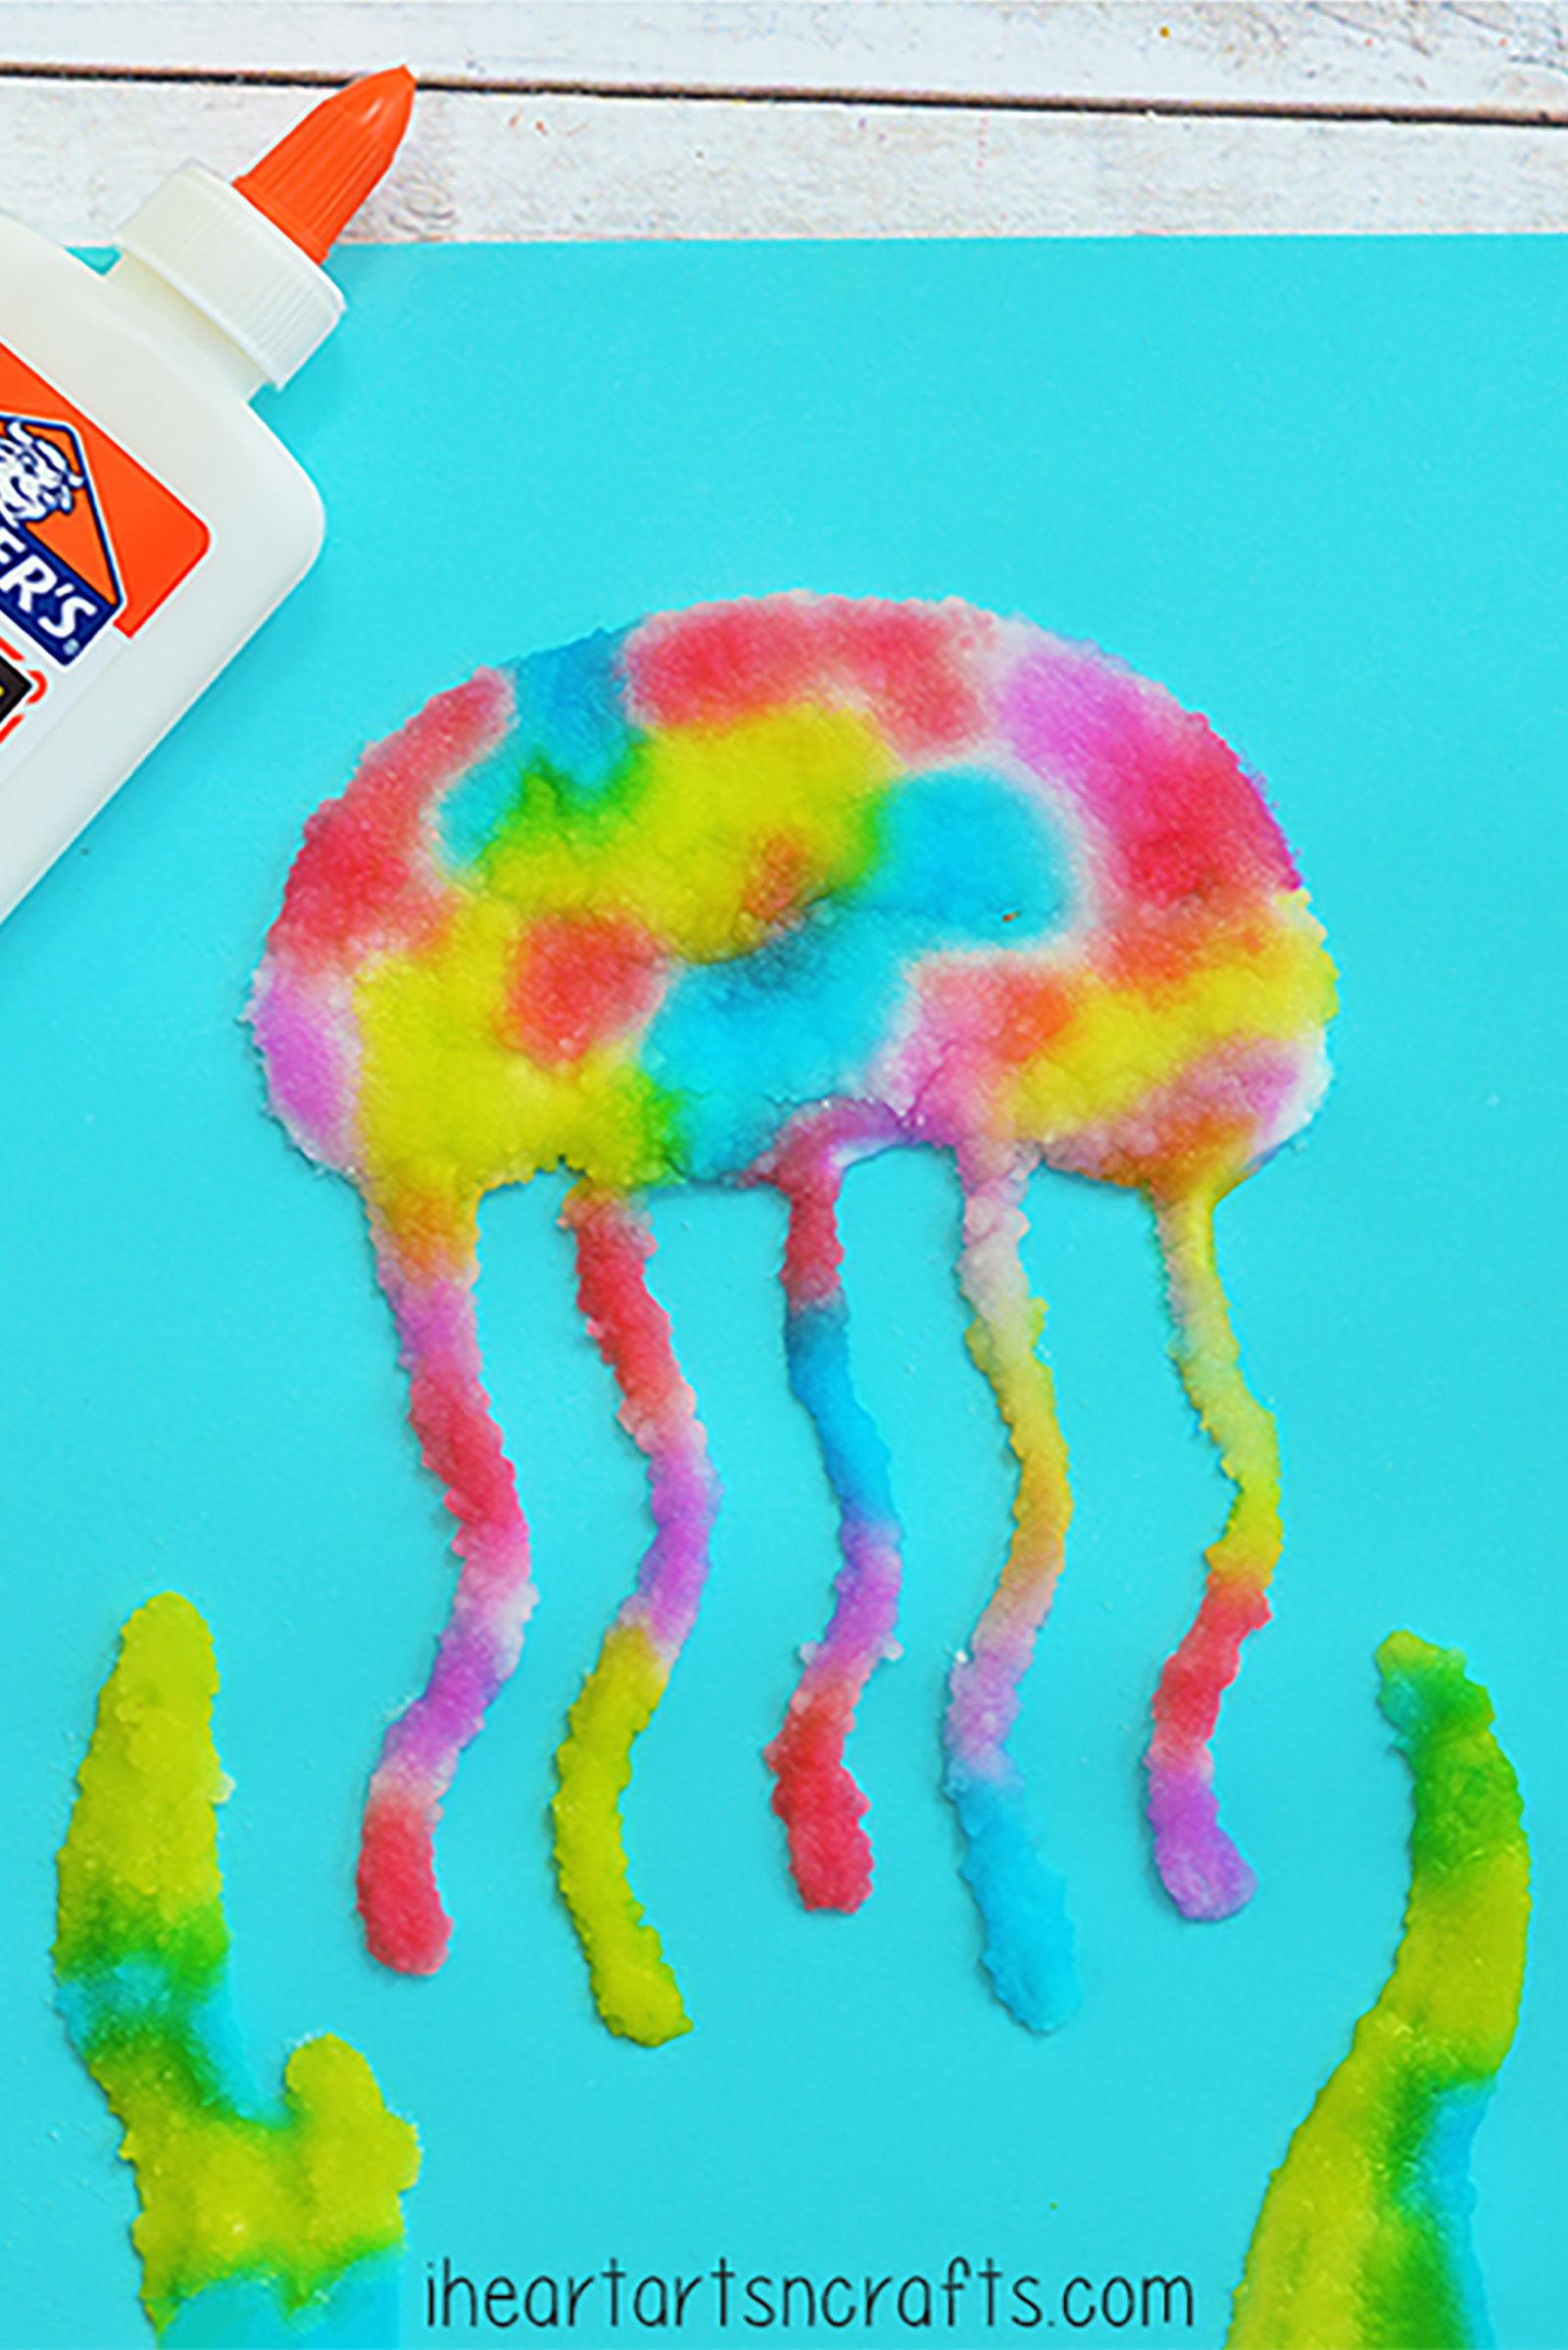 10 Easy Crafts For Kids That Will Brighten Up Rainy Days